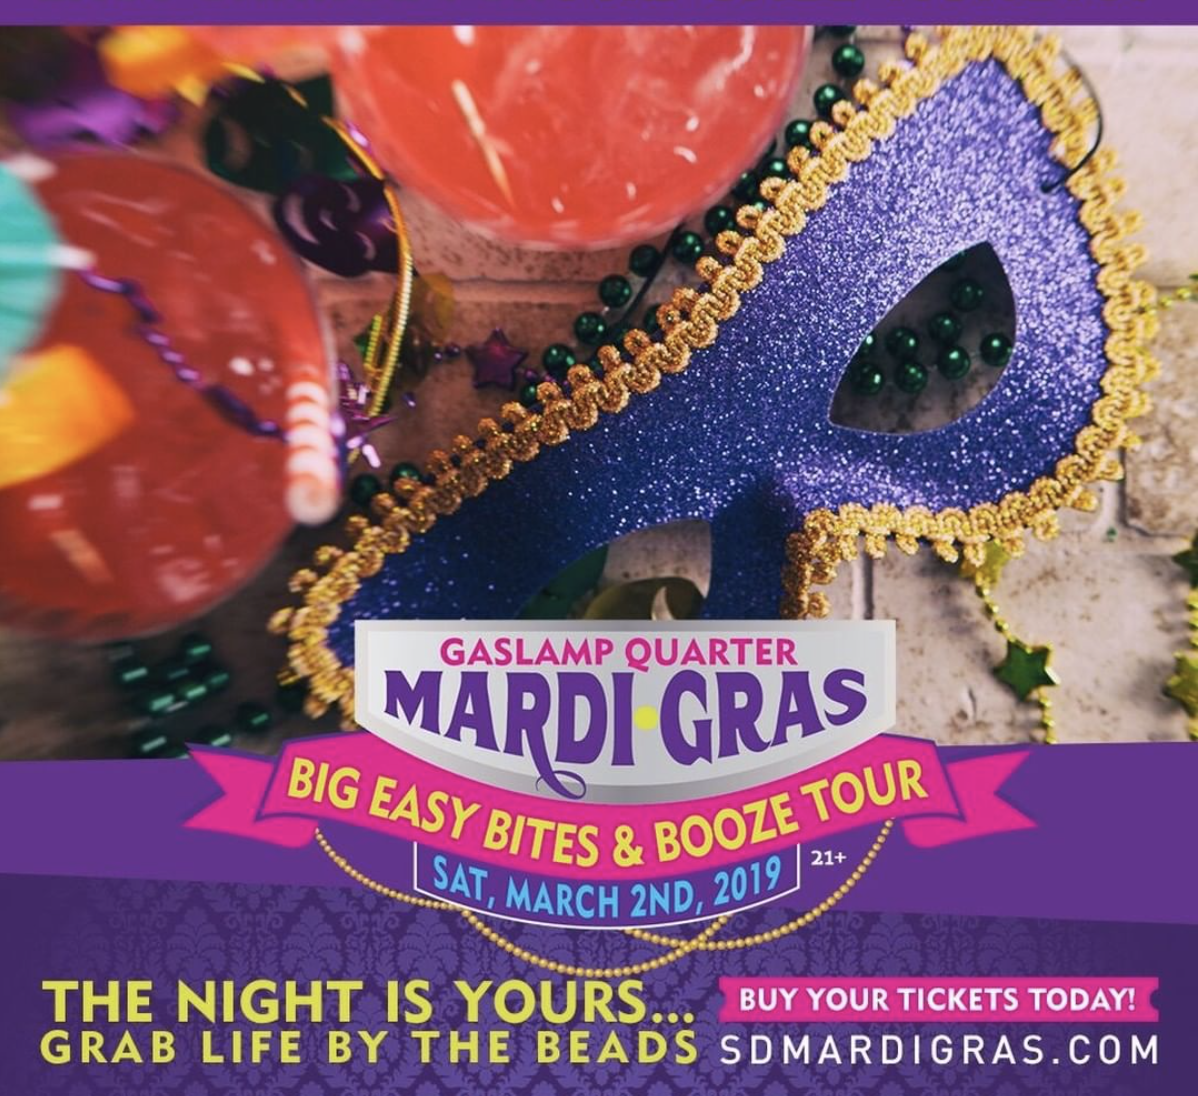 Save On Passes & Enter To Win Tickets To The Big Easy Bites & Booze Tour on March 2!